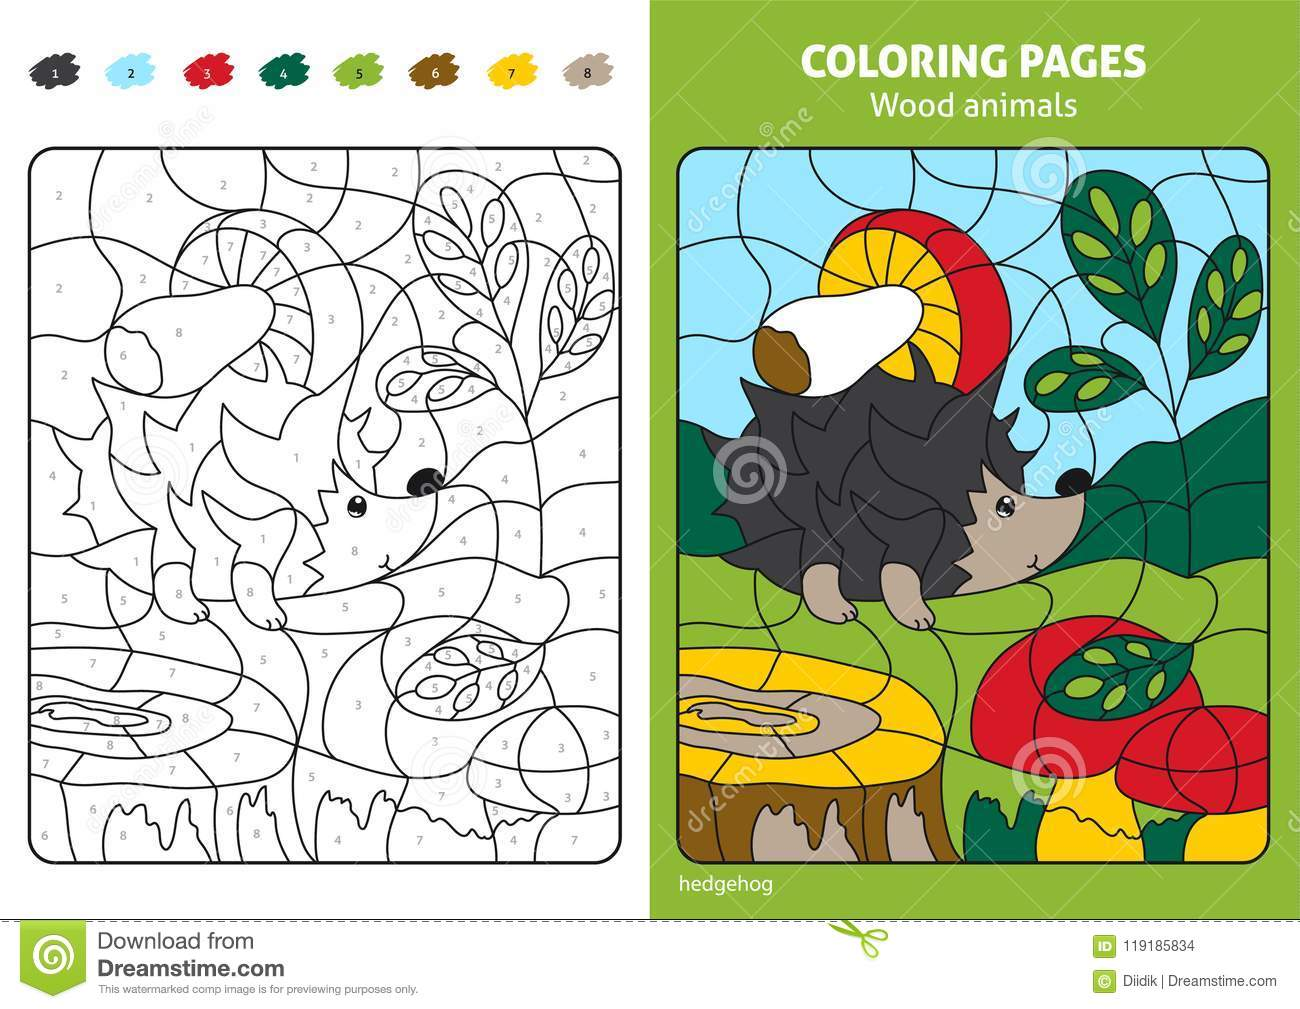 Wood Animals Coloring Page For Kids Hedgehog In Forest